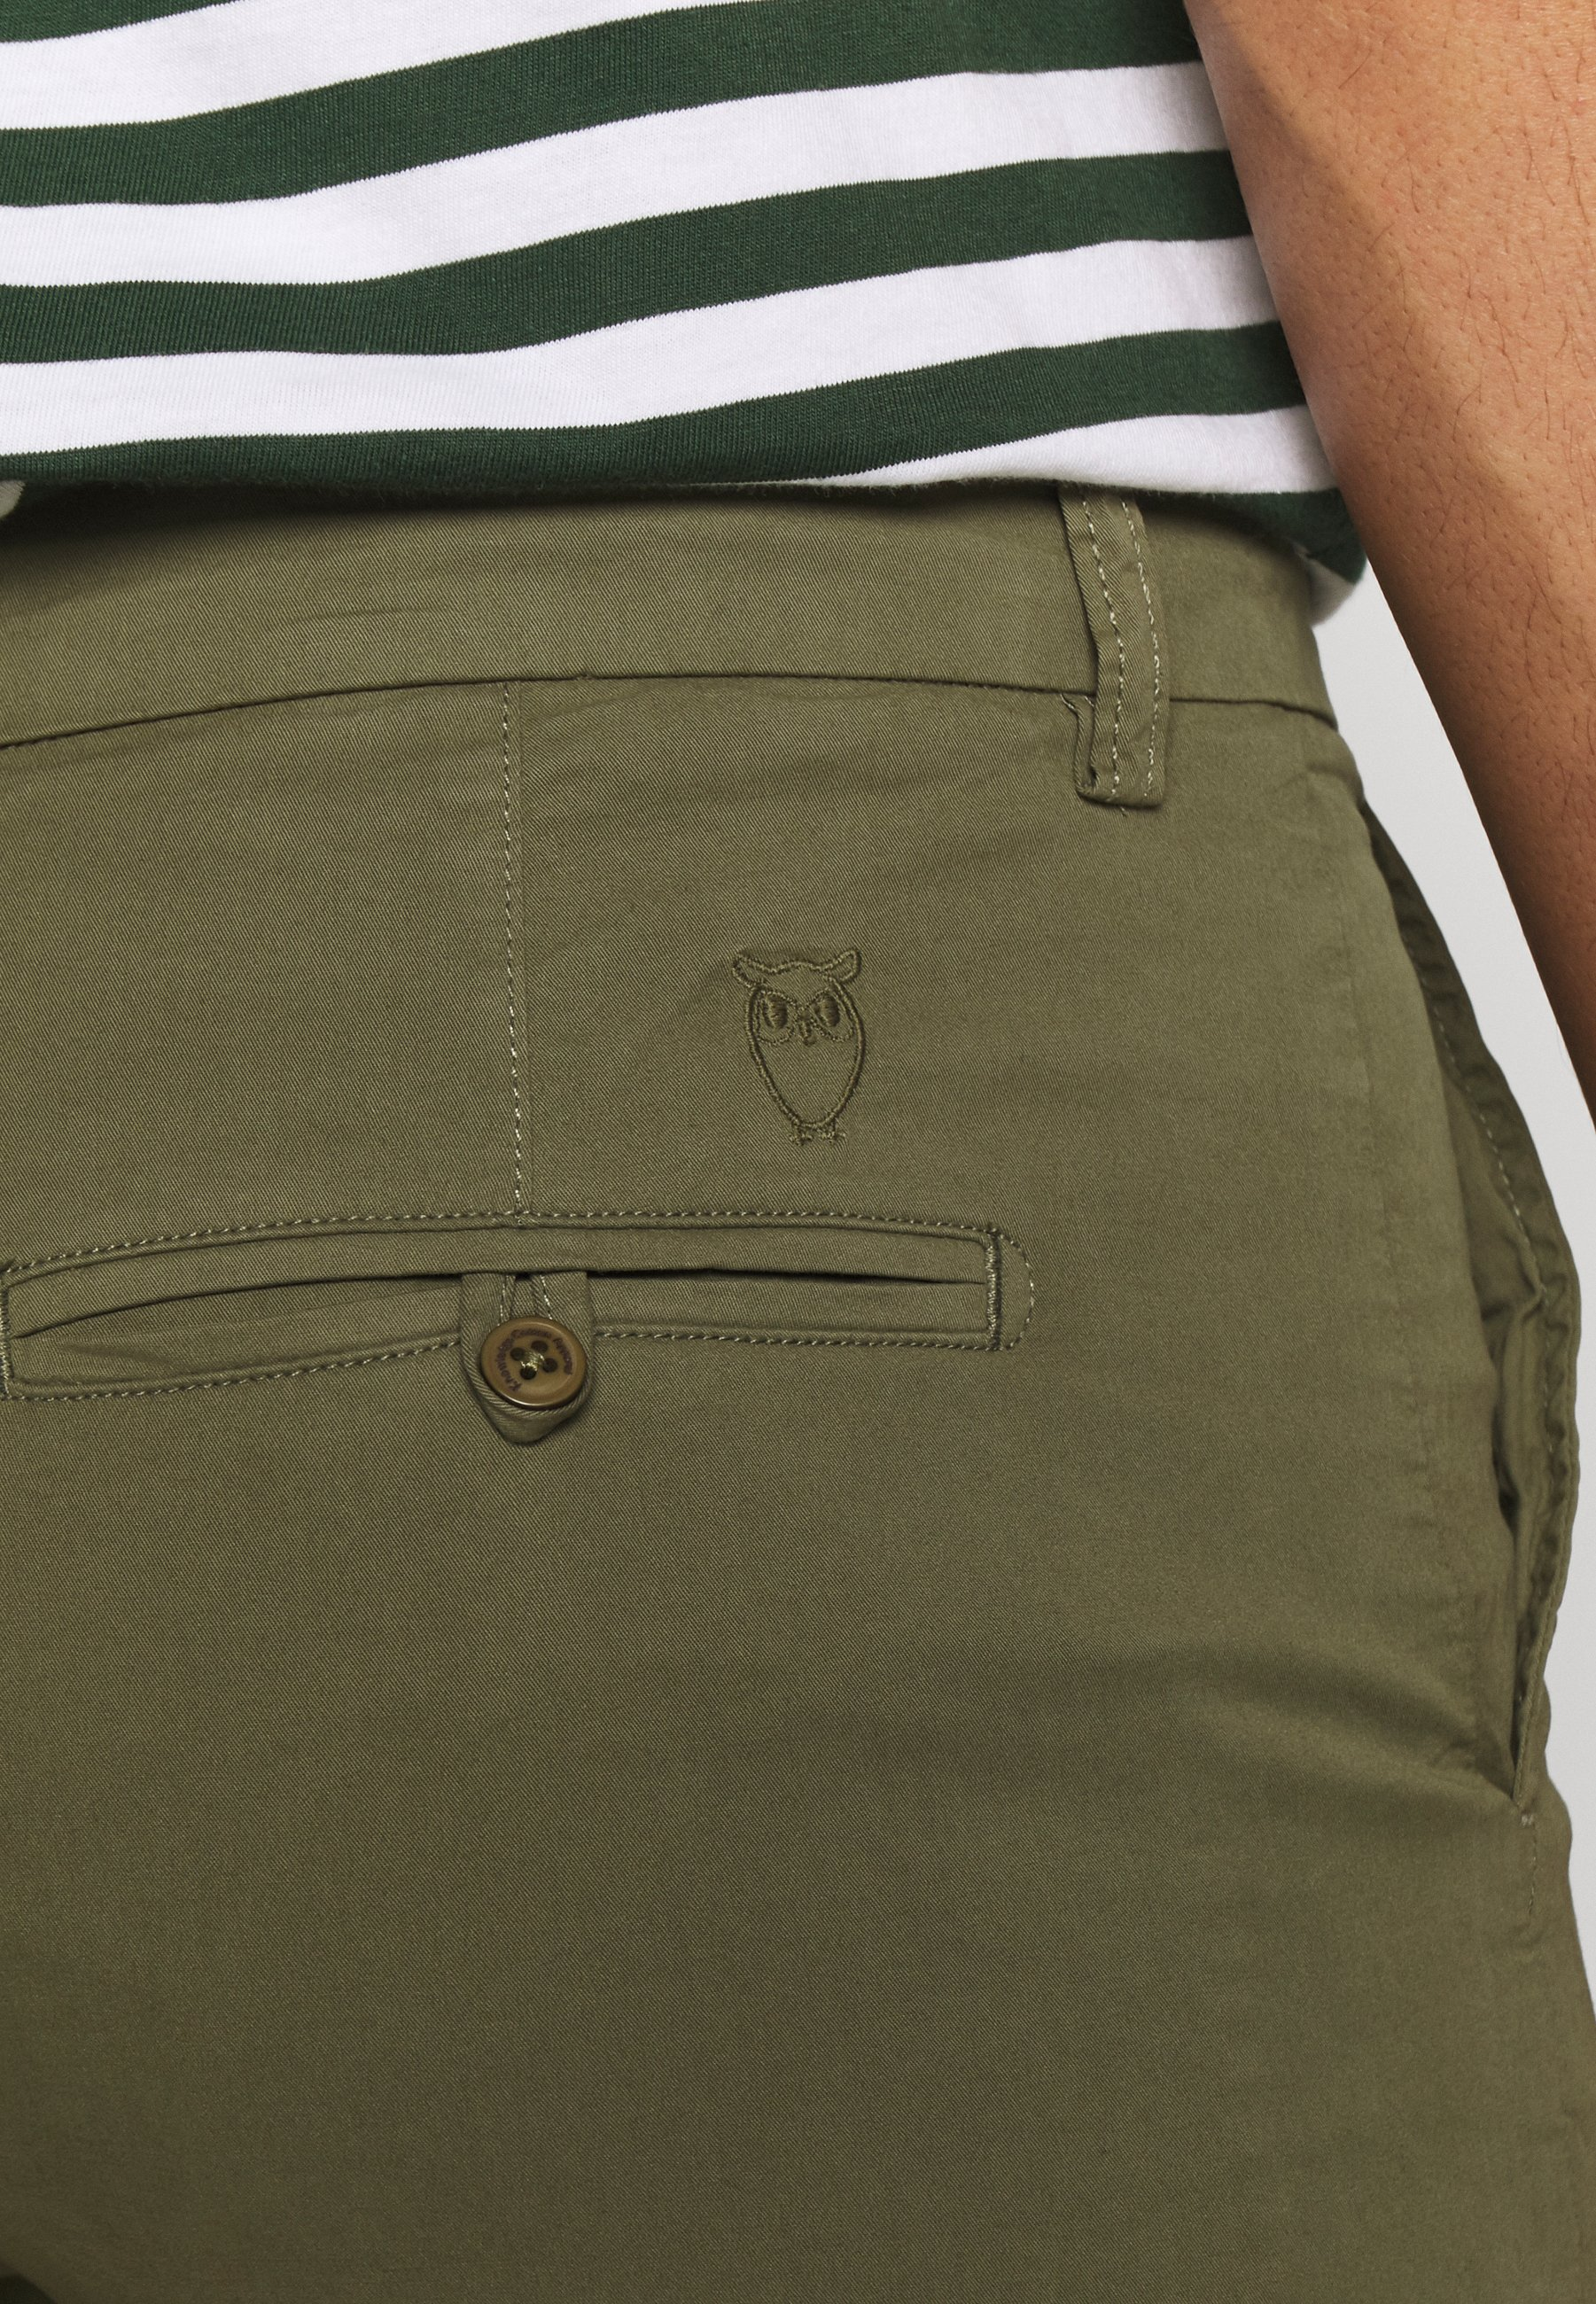 Knowledge Cotton Apparel Shorts - burned olive